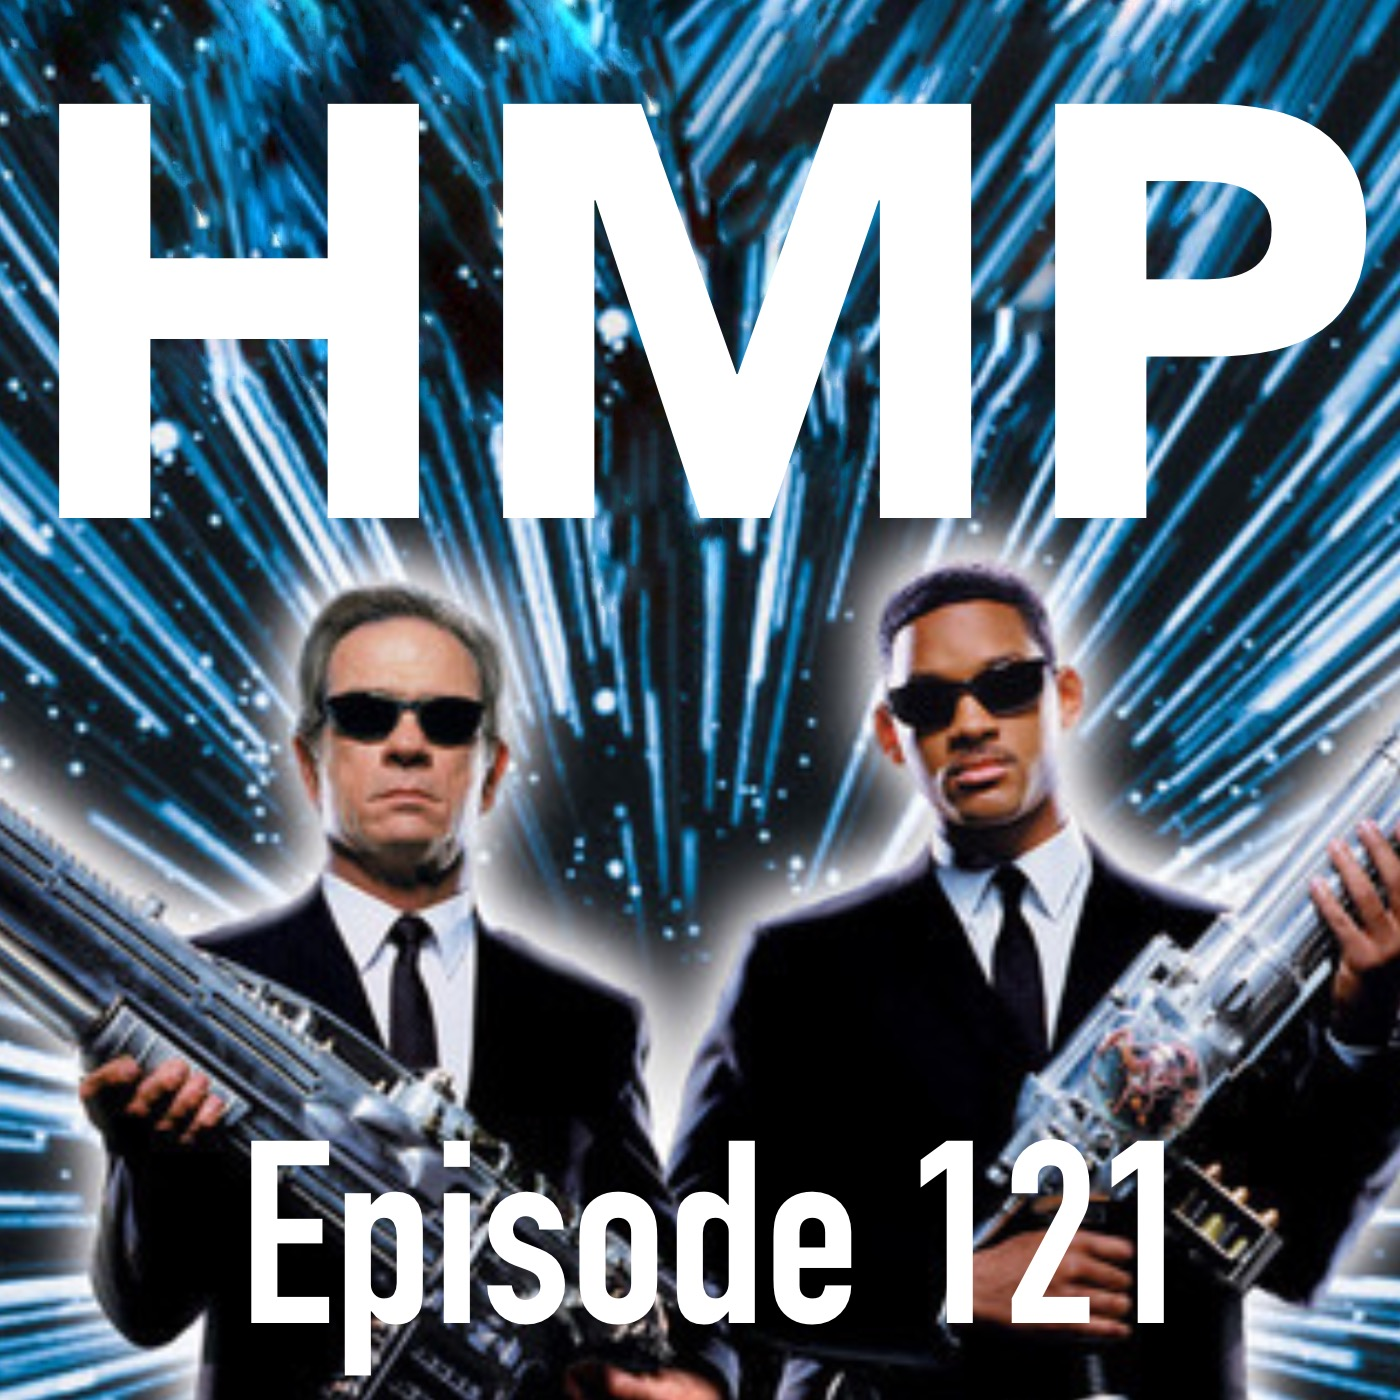 Episode 121- Men in Black